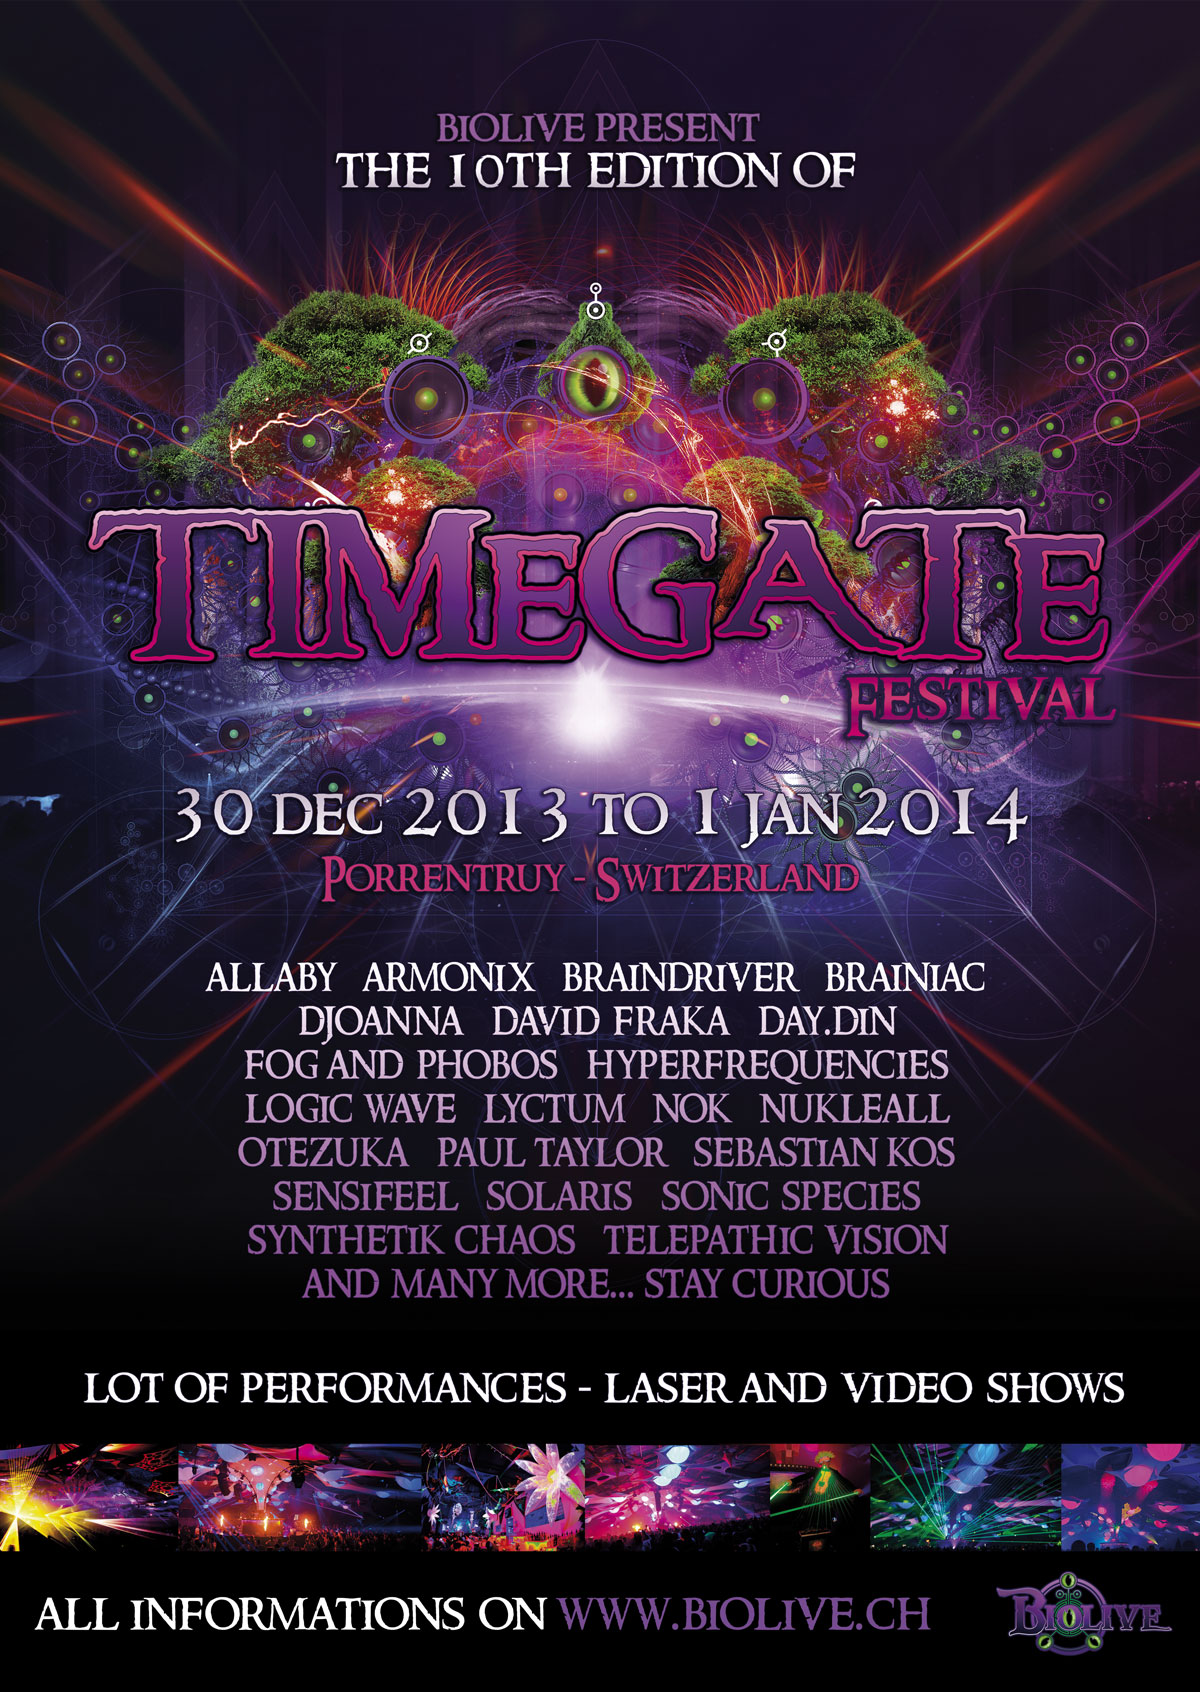 30 december 2013 to 1st january 2014 TimeGate 10 Years. Lot of performances - Laser and video Shows. allaby armonix braindriver brainiac djoanna david fraka day.din fog and phobos hyperfrequencies logic wave lyctum nok nukleall otezuka paul taylor sebastian kos sensifeel solaris sonic species synthetik chaos telepathic vision and many more... stay curious